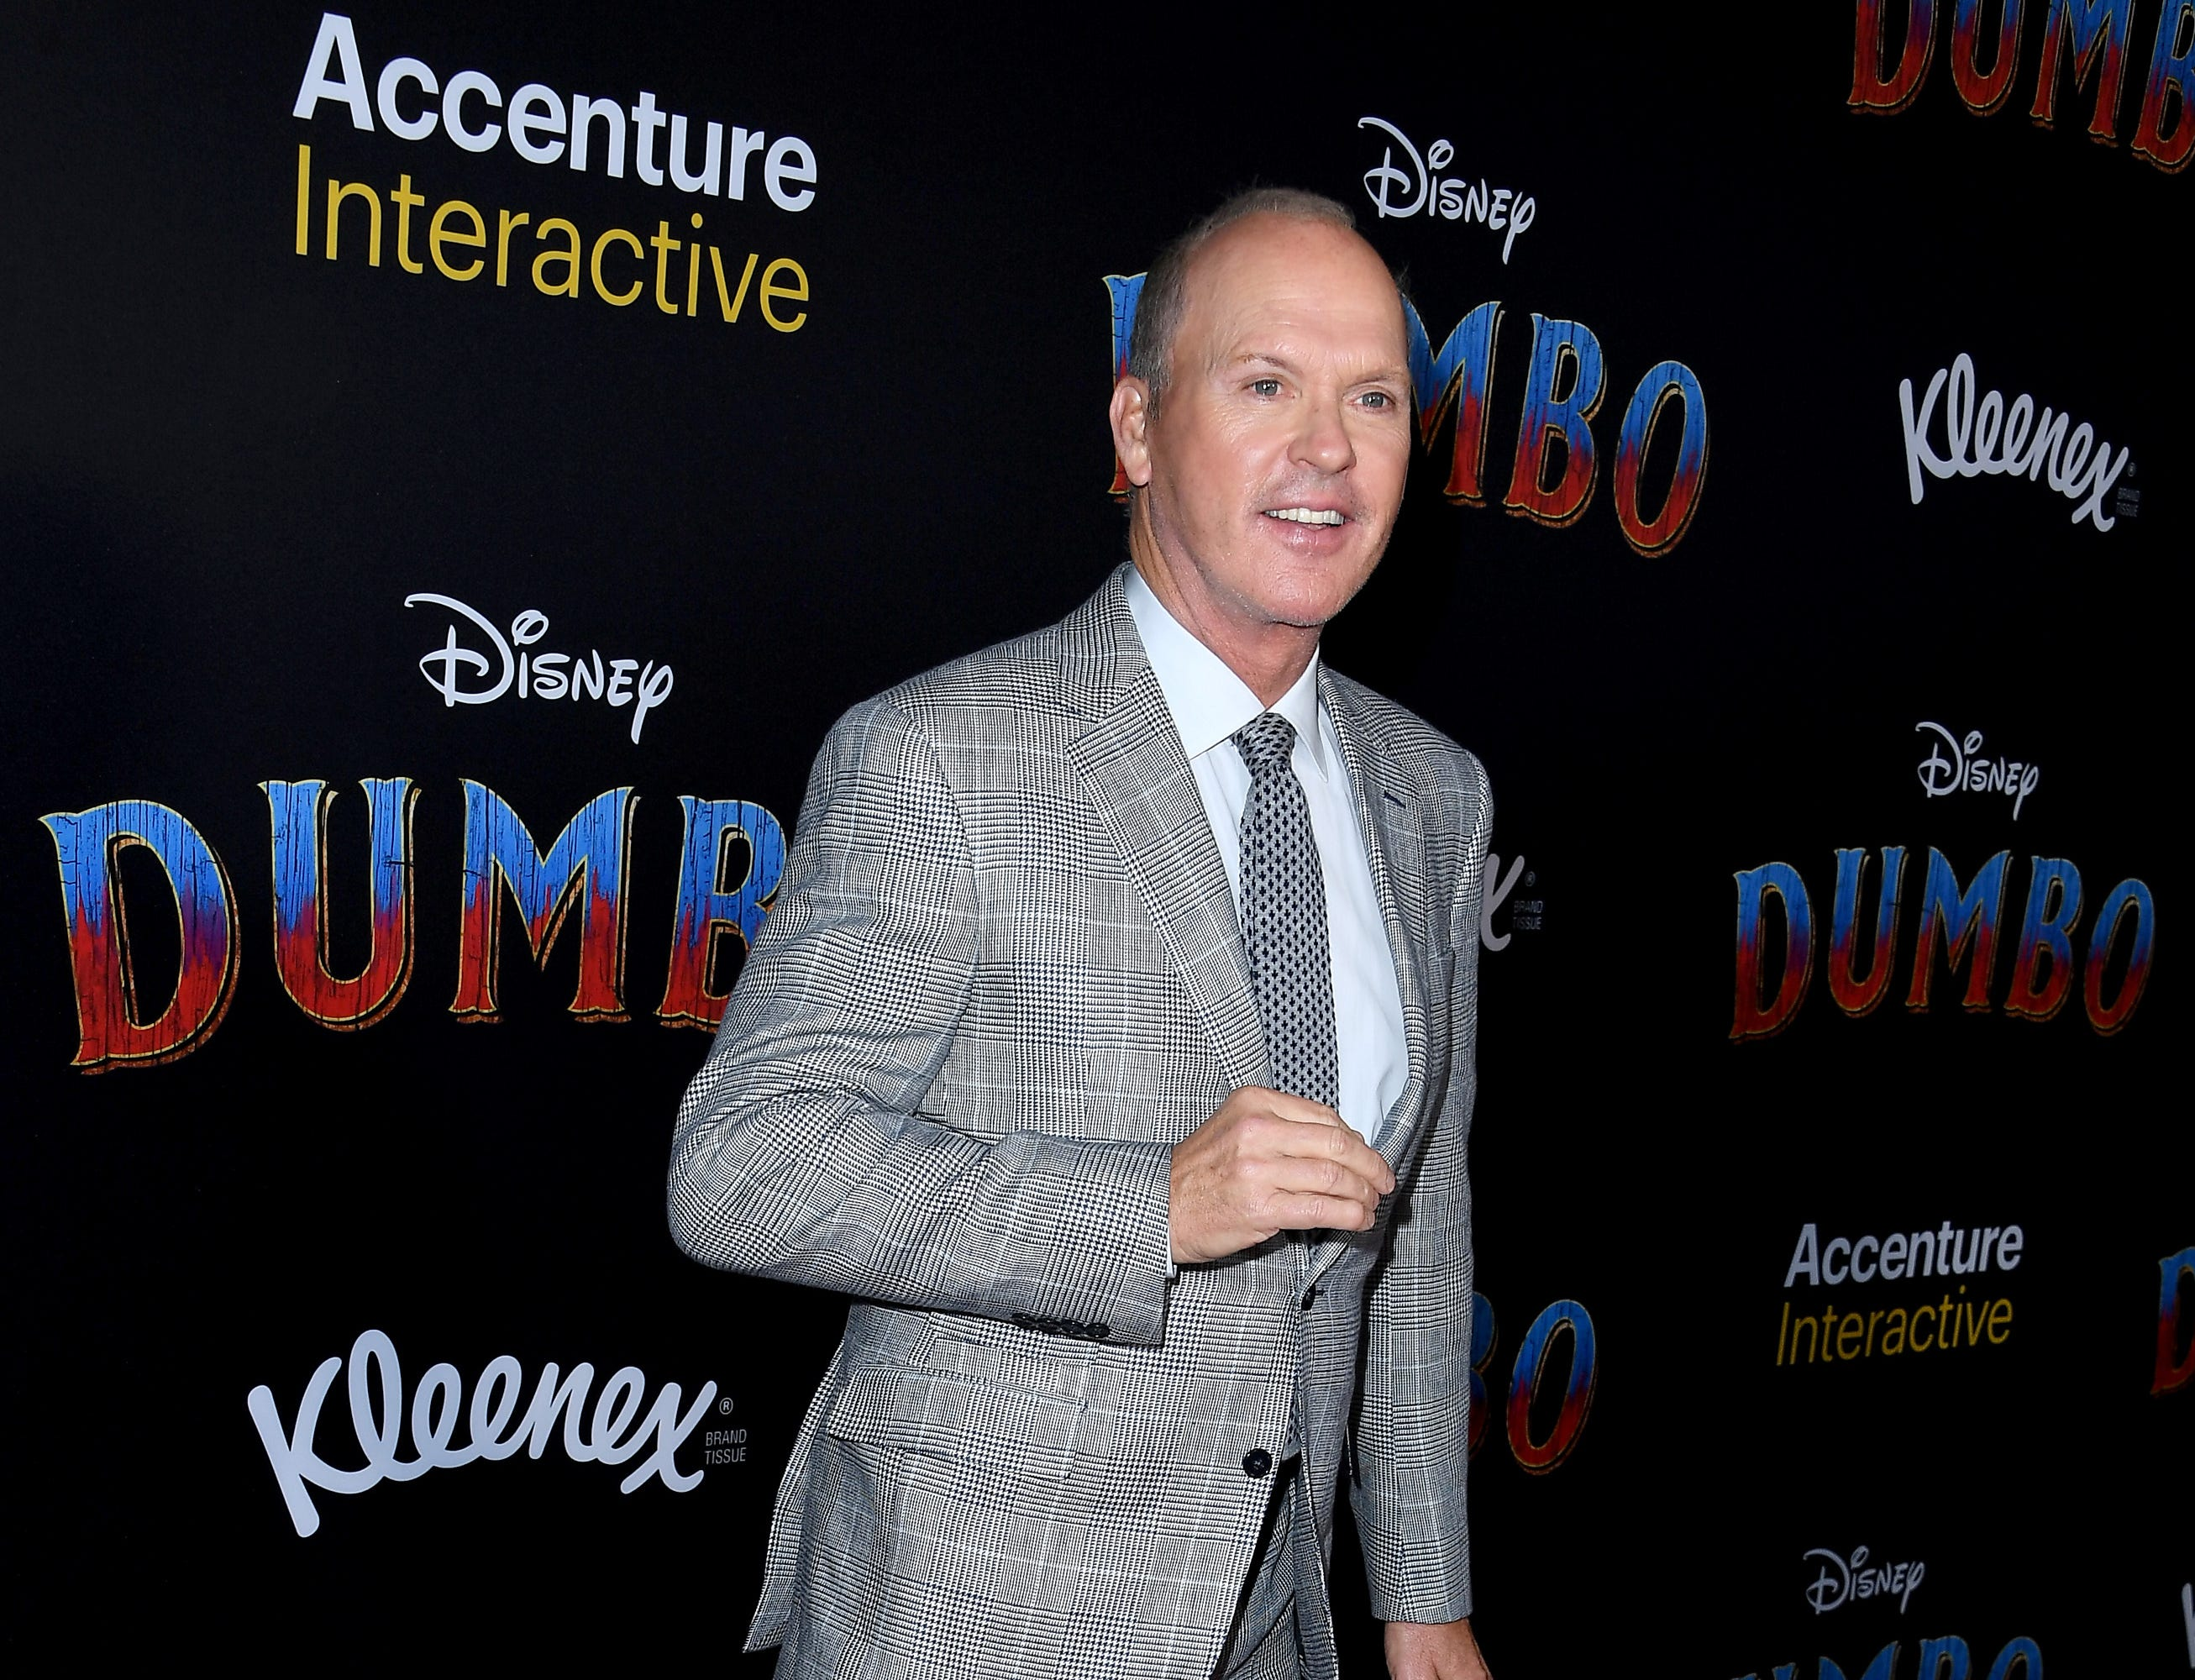 """LOS ANGELES, CALIFORNIA - MARCH 11: Michael Keaton attends the premiere of Disney's """"Dumbo"""" at El Capitan Theatre on March 11, 2019 in Los Angeles, California. (Photo by Steve Granitz/WireImage) ORG XMIT: 775305572 ORIG FILE ID: 1135217563"""